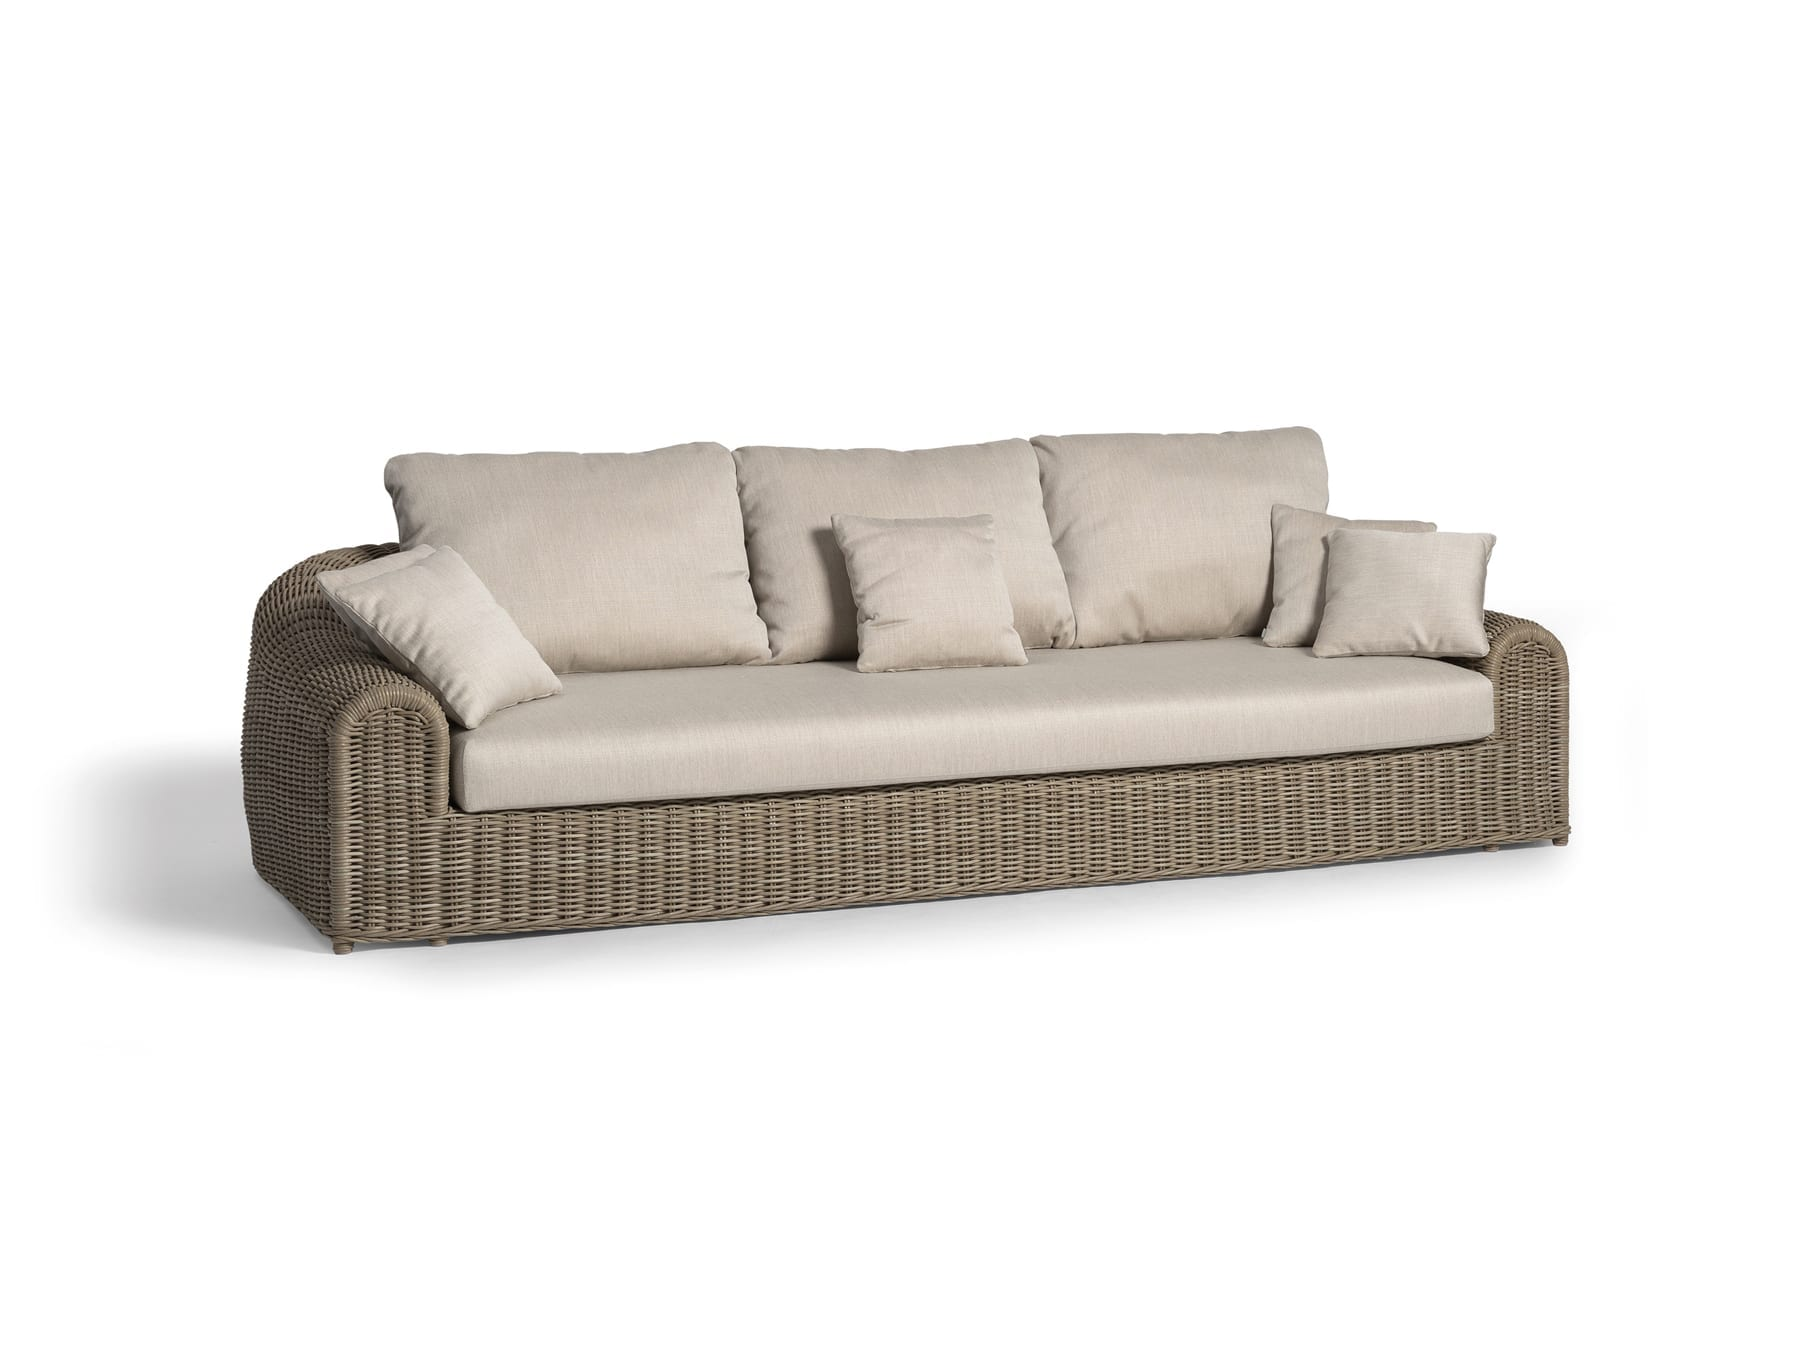 manutti river 3 seater sofa mckenzie willis